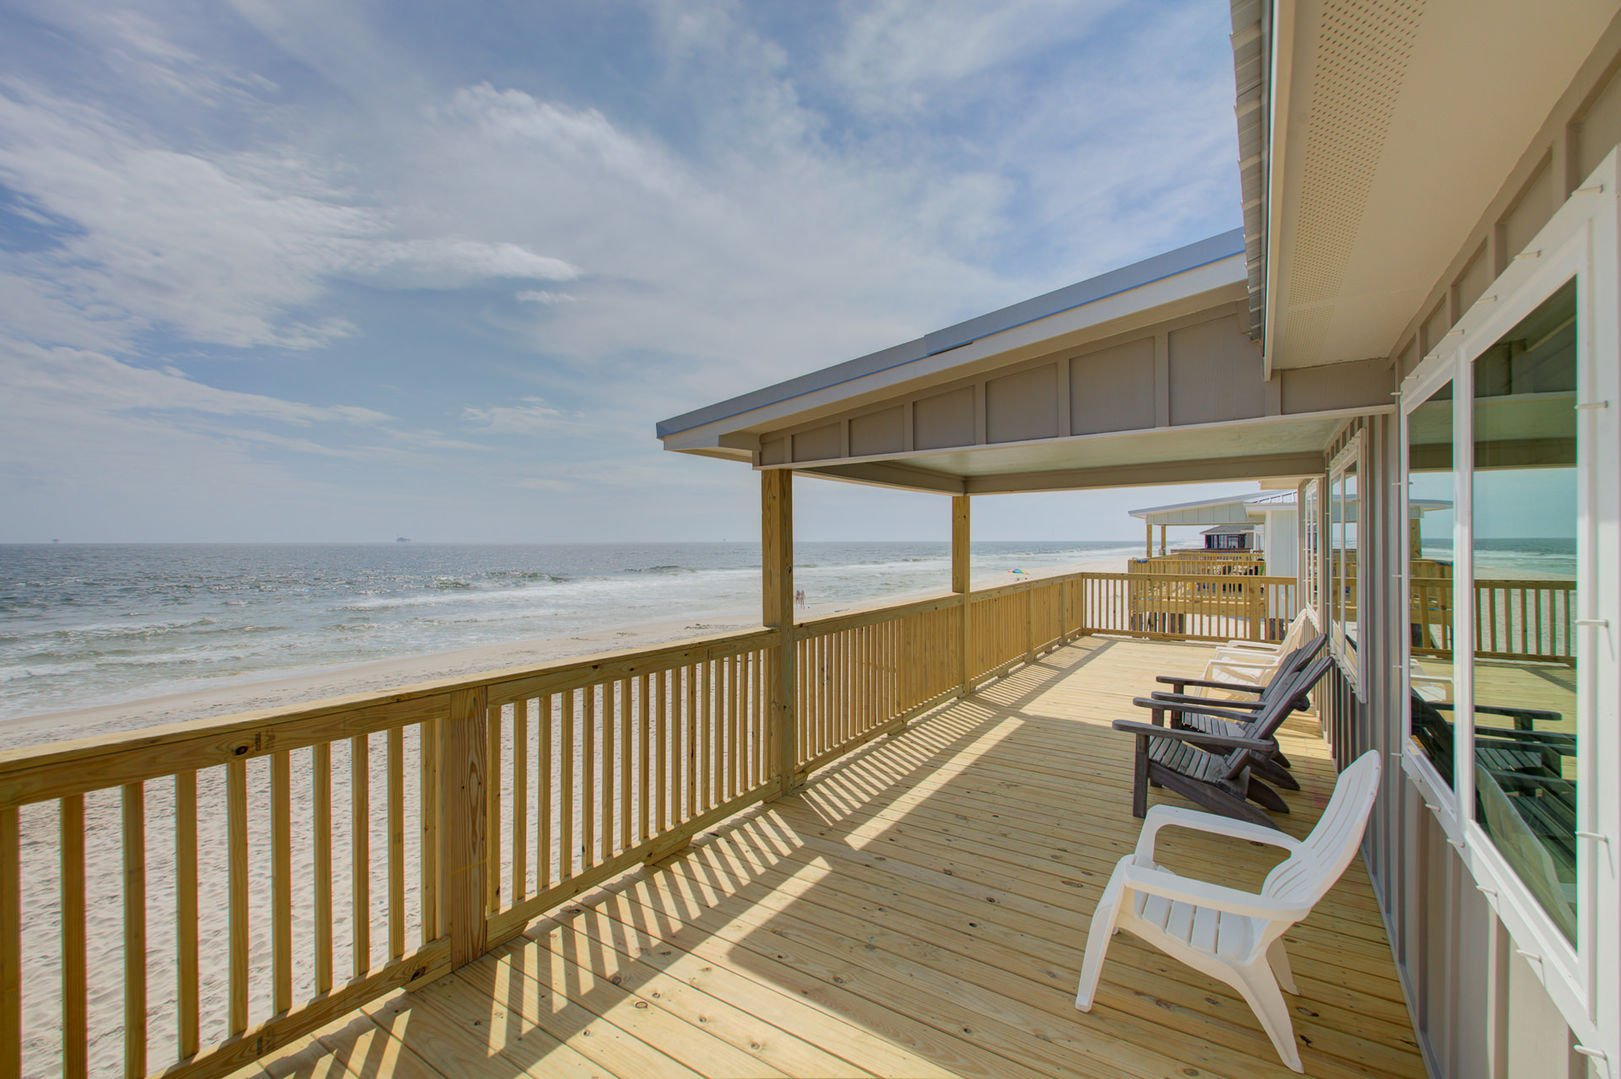 Beautiful Ocean Views from the deck of this beachfront Gulf Shores rental